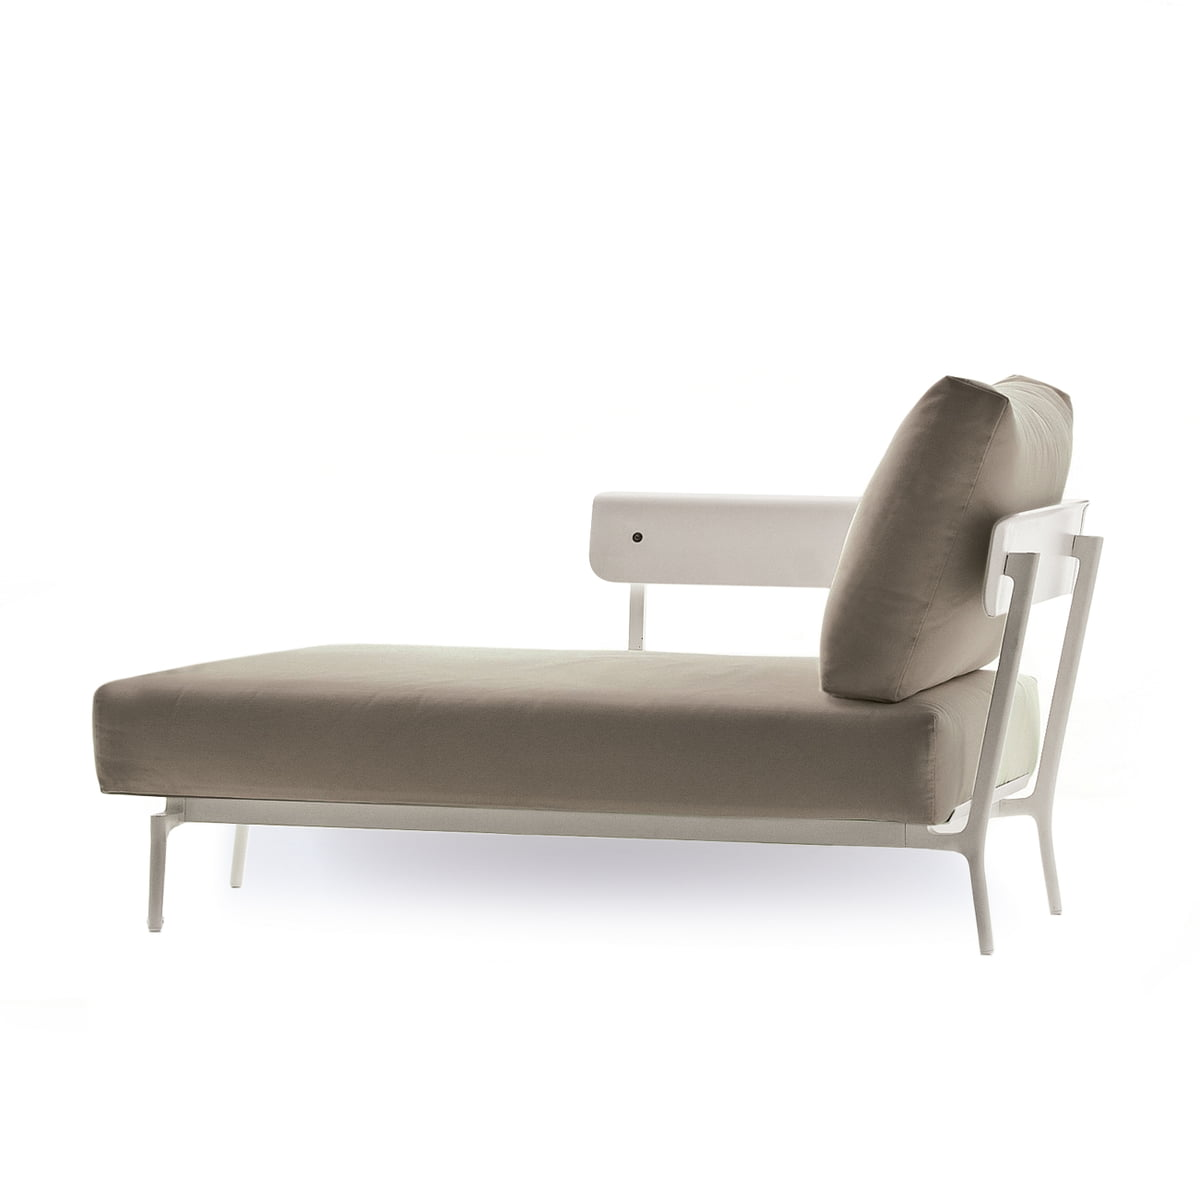 The aikana chaise longue by fast in the shop for Chaise longue cavallino